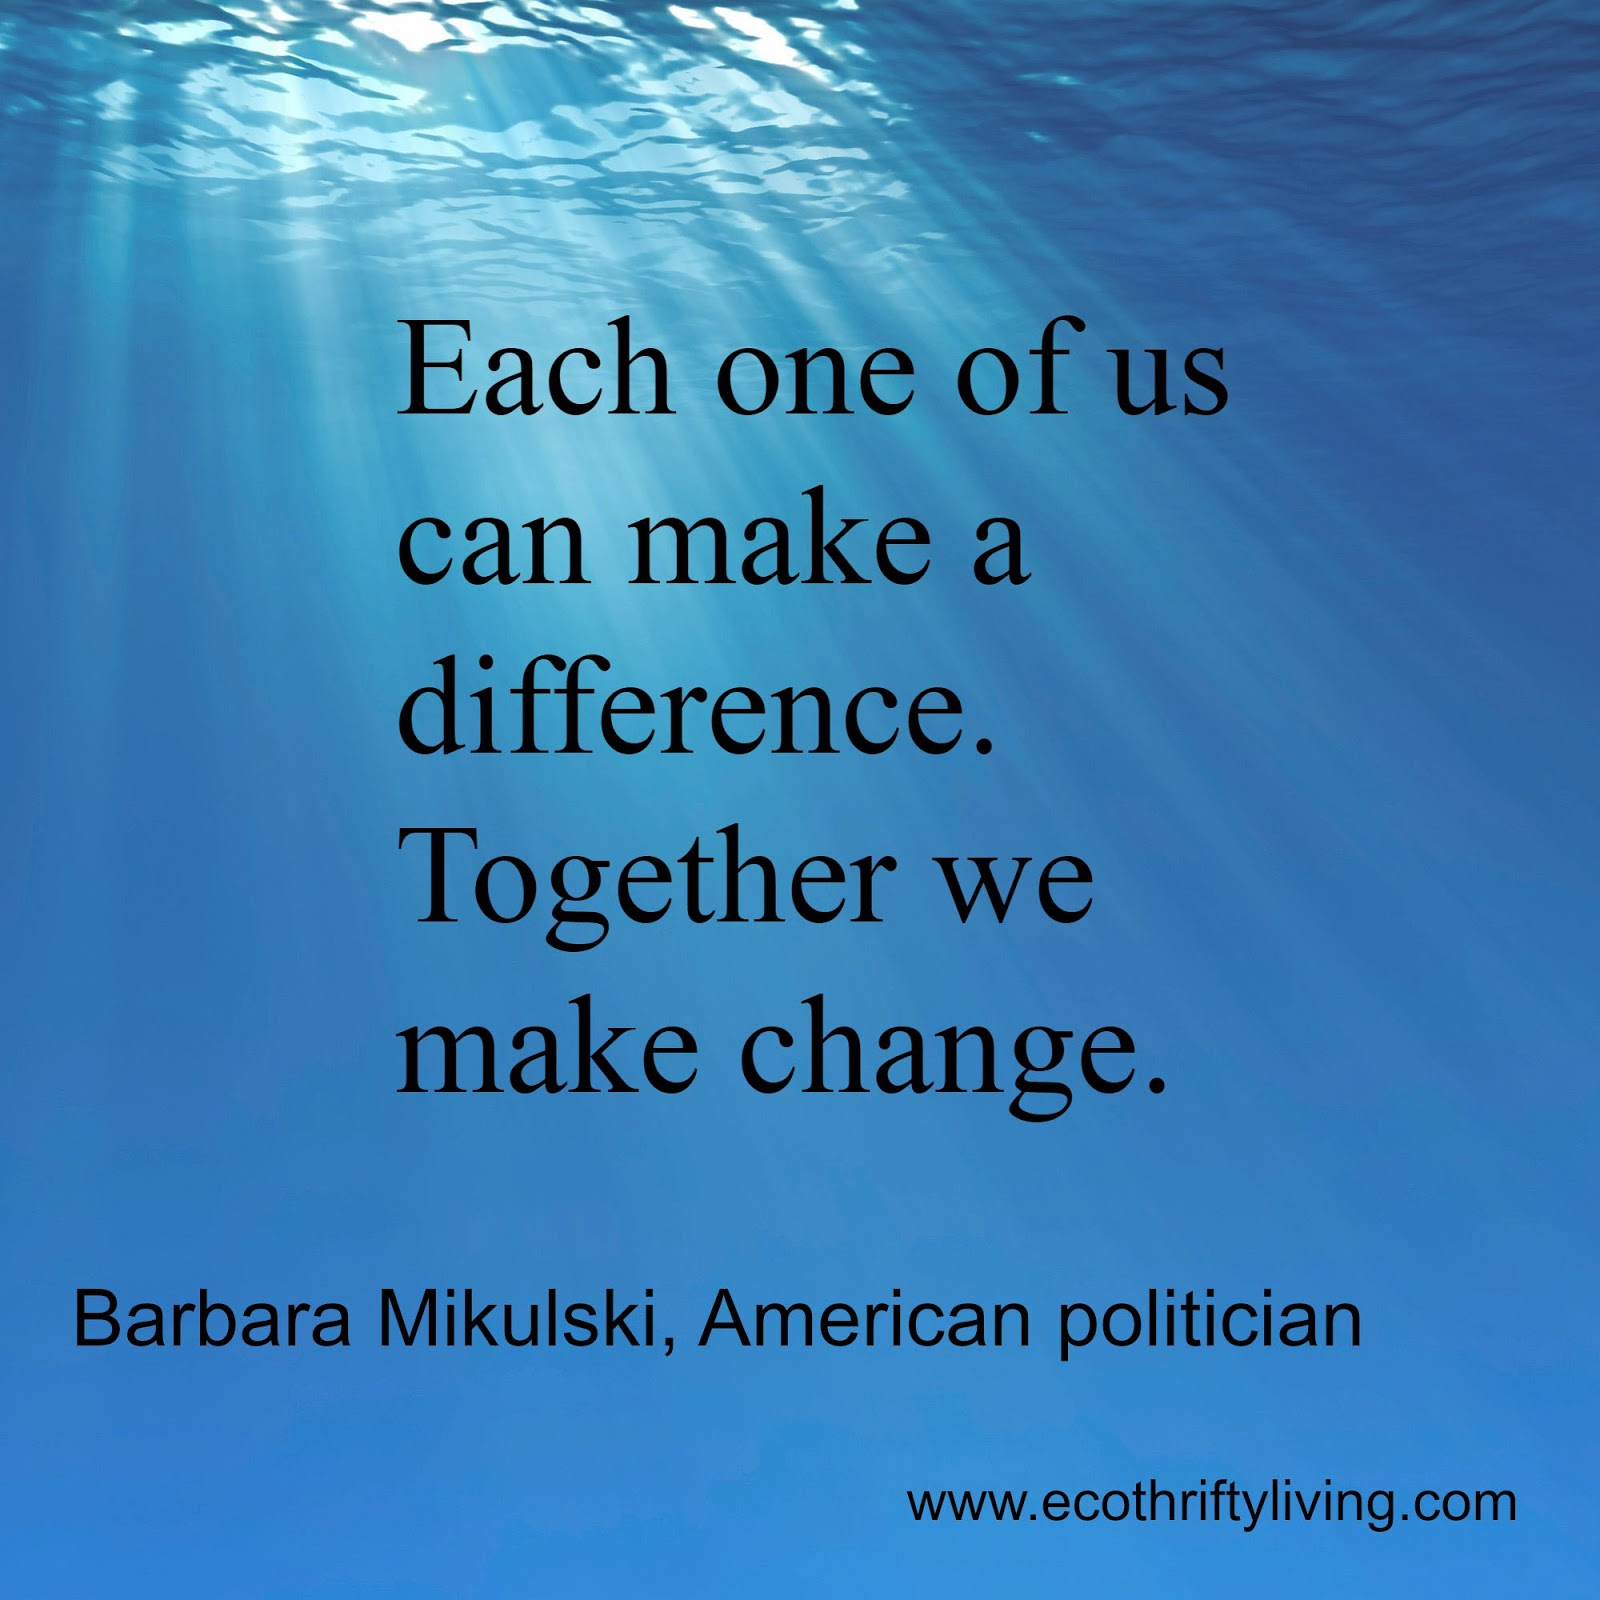 Together we can make a difference inspirational poster on pollution